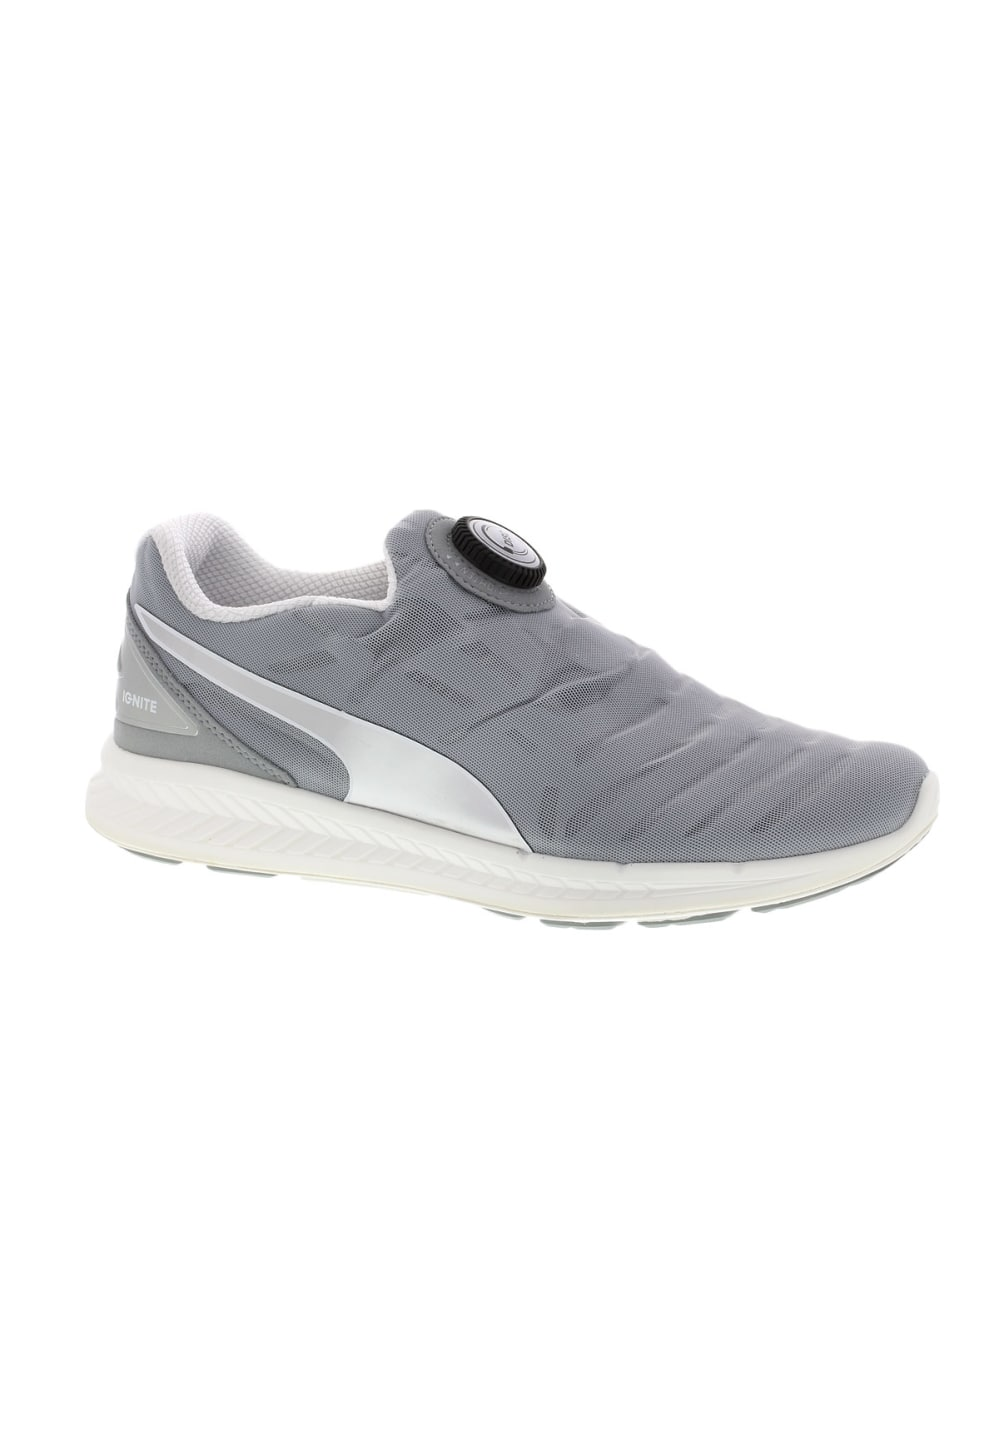 a2dc8dbcf9 Puma IGNITE Disc - Running shoes for Women - Grey